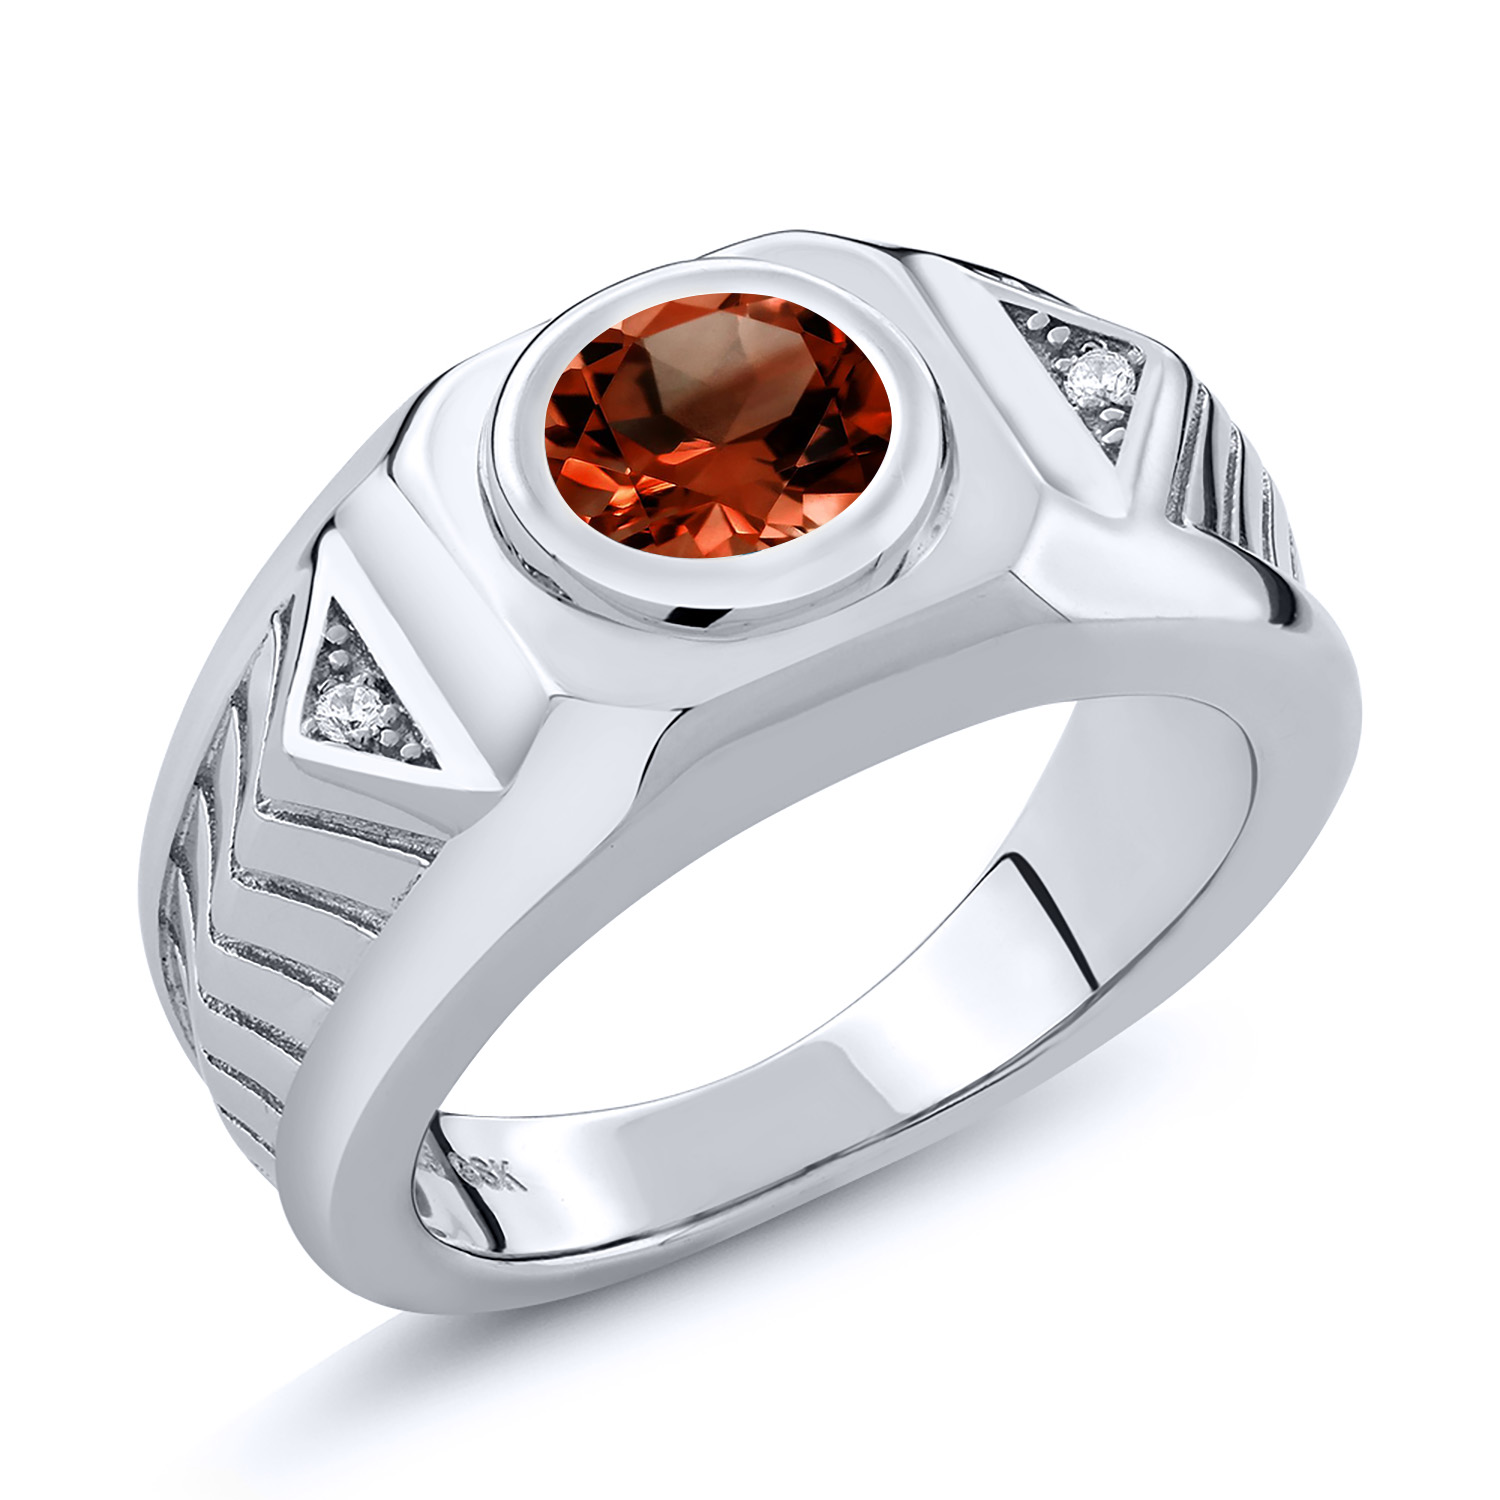 1.85 Ct Round Red Garnet 925 Sterling Silver Ring